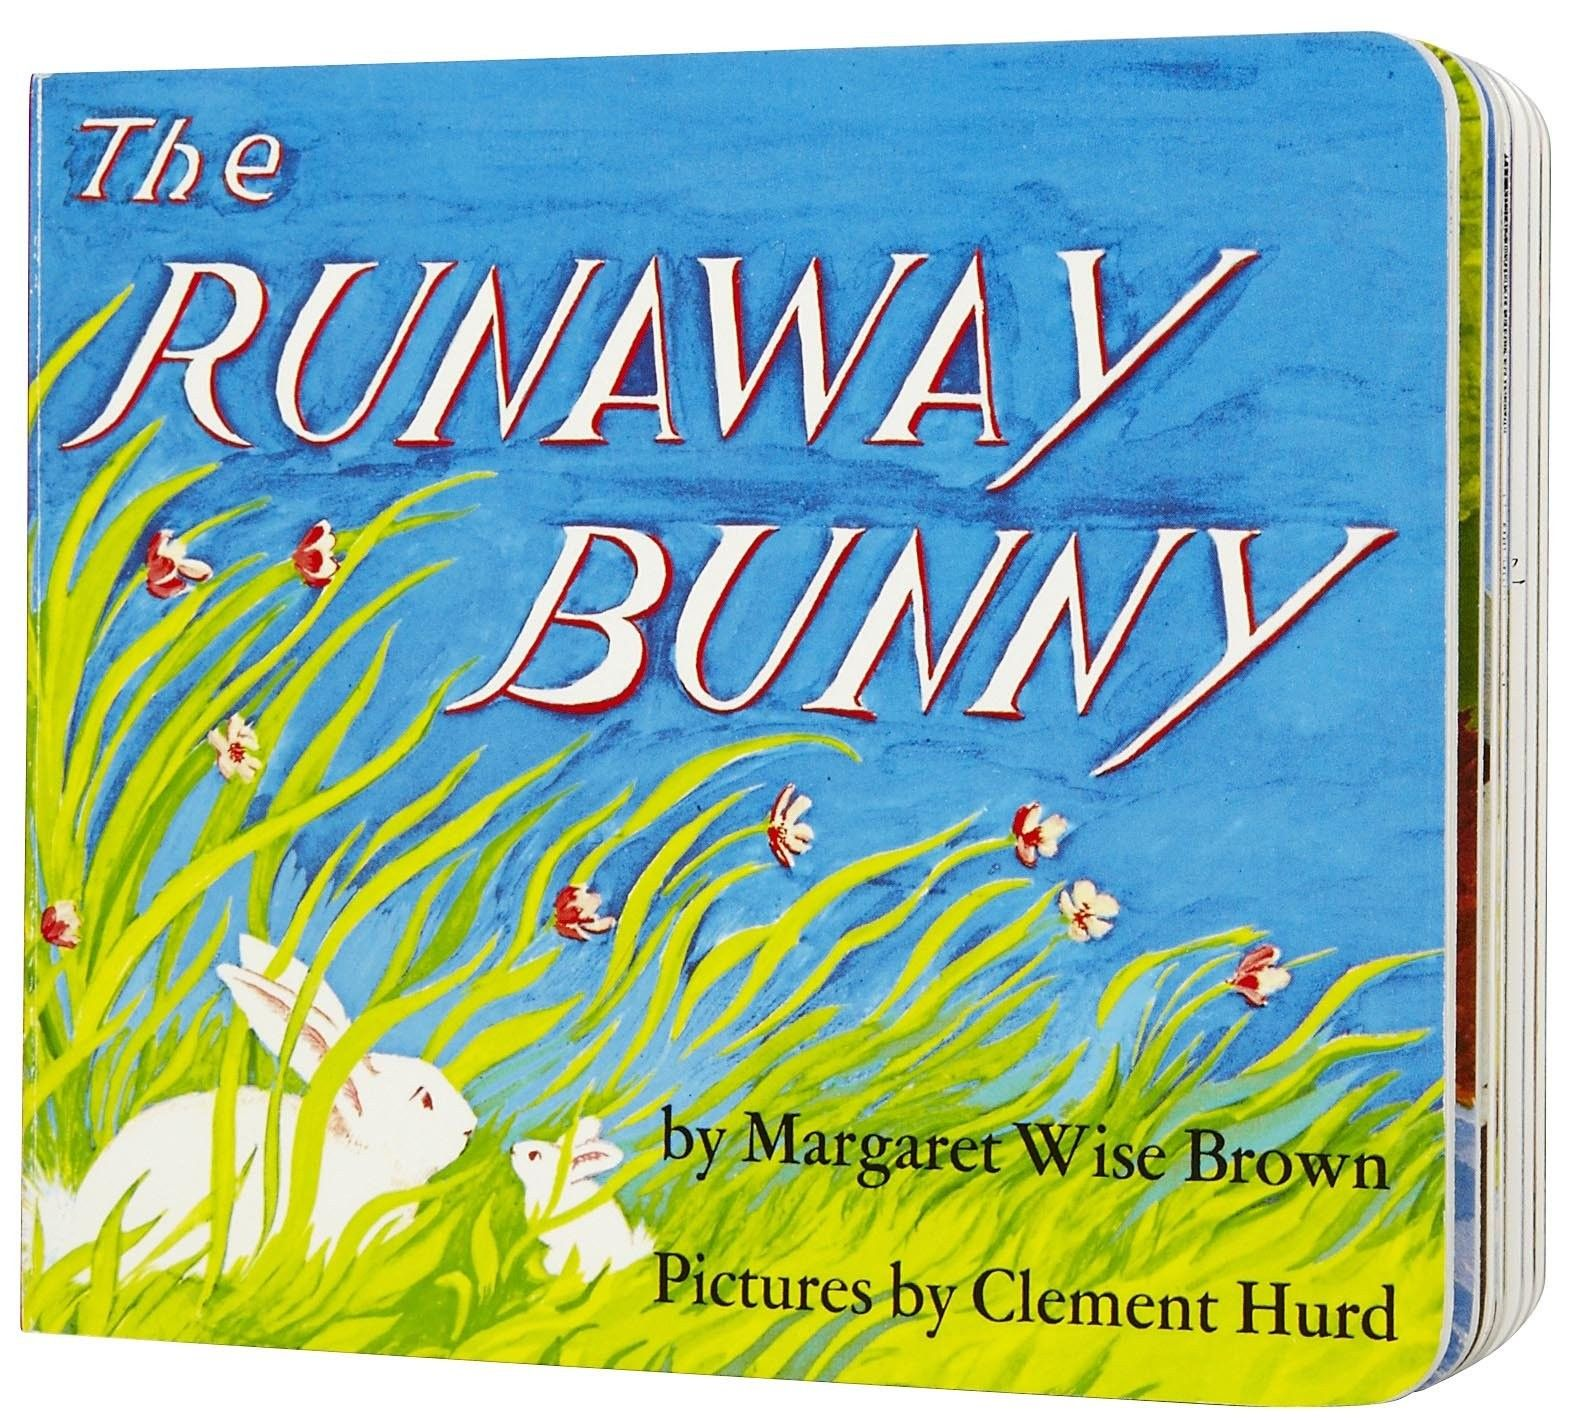 The Runaway Bunny by Margaret Wise Brown | Classic kids ...